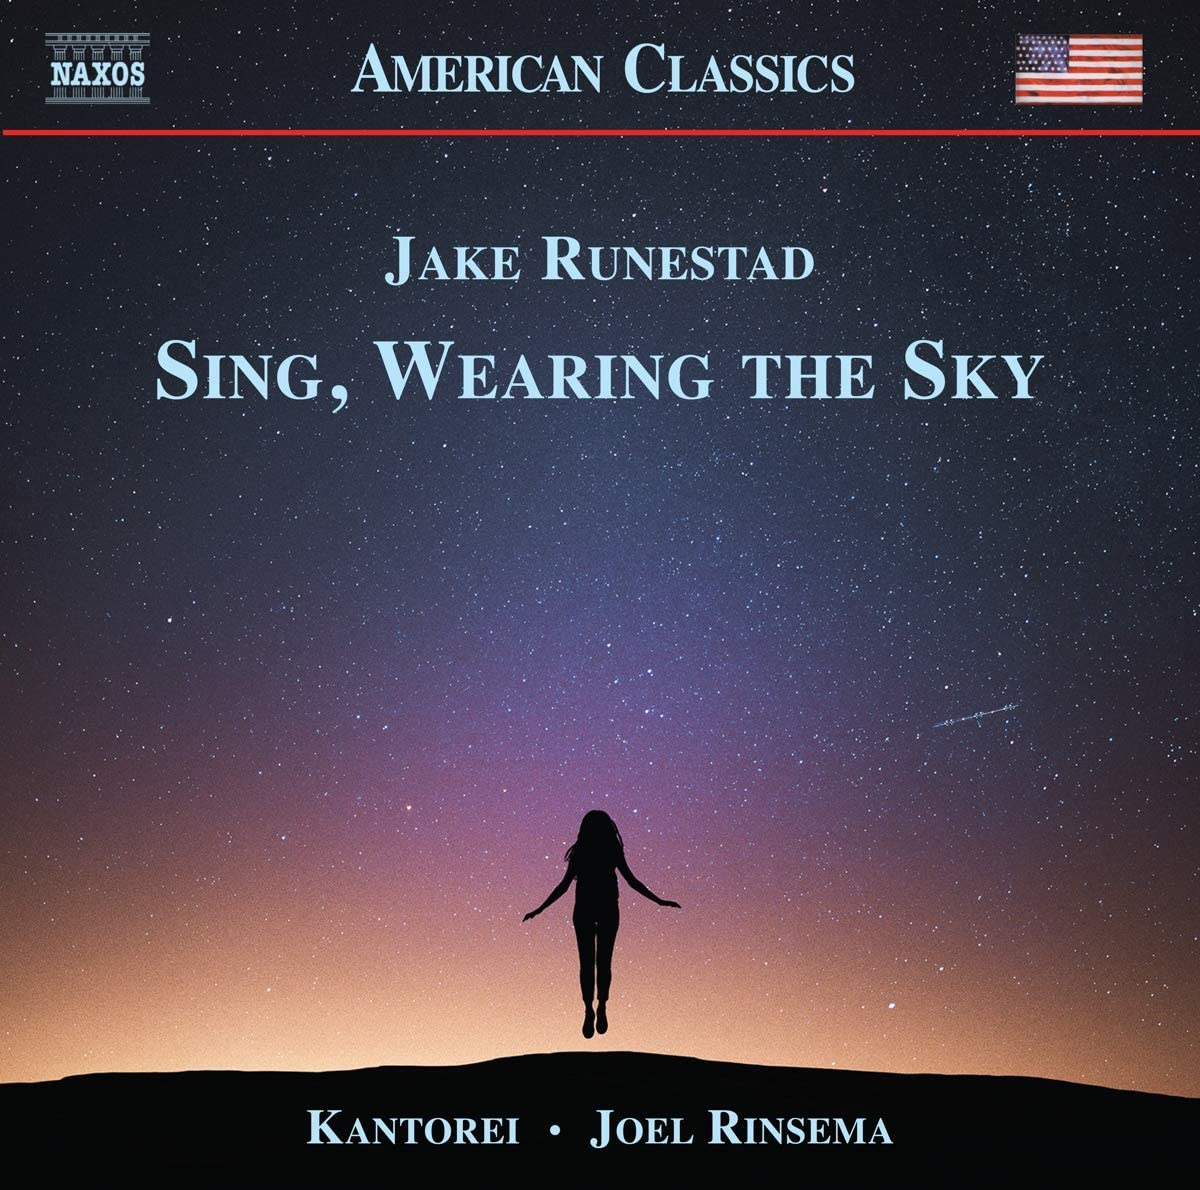 Review of RUNESTAD Sing, Wearing the Sky